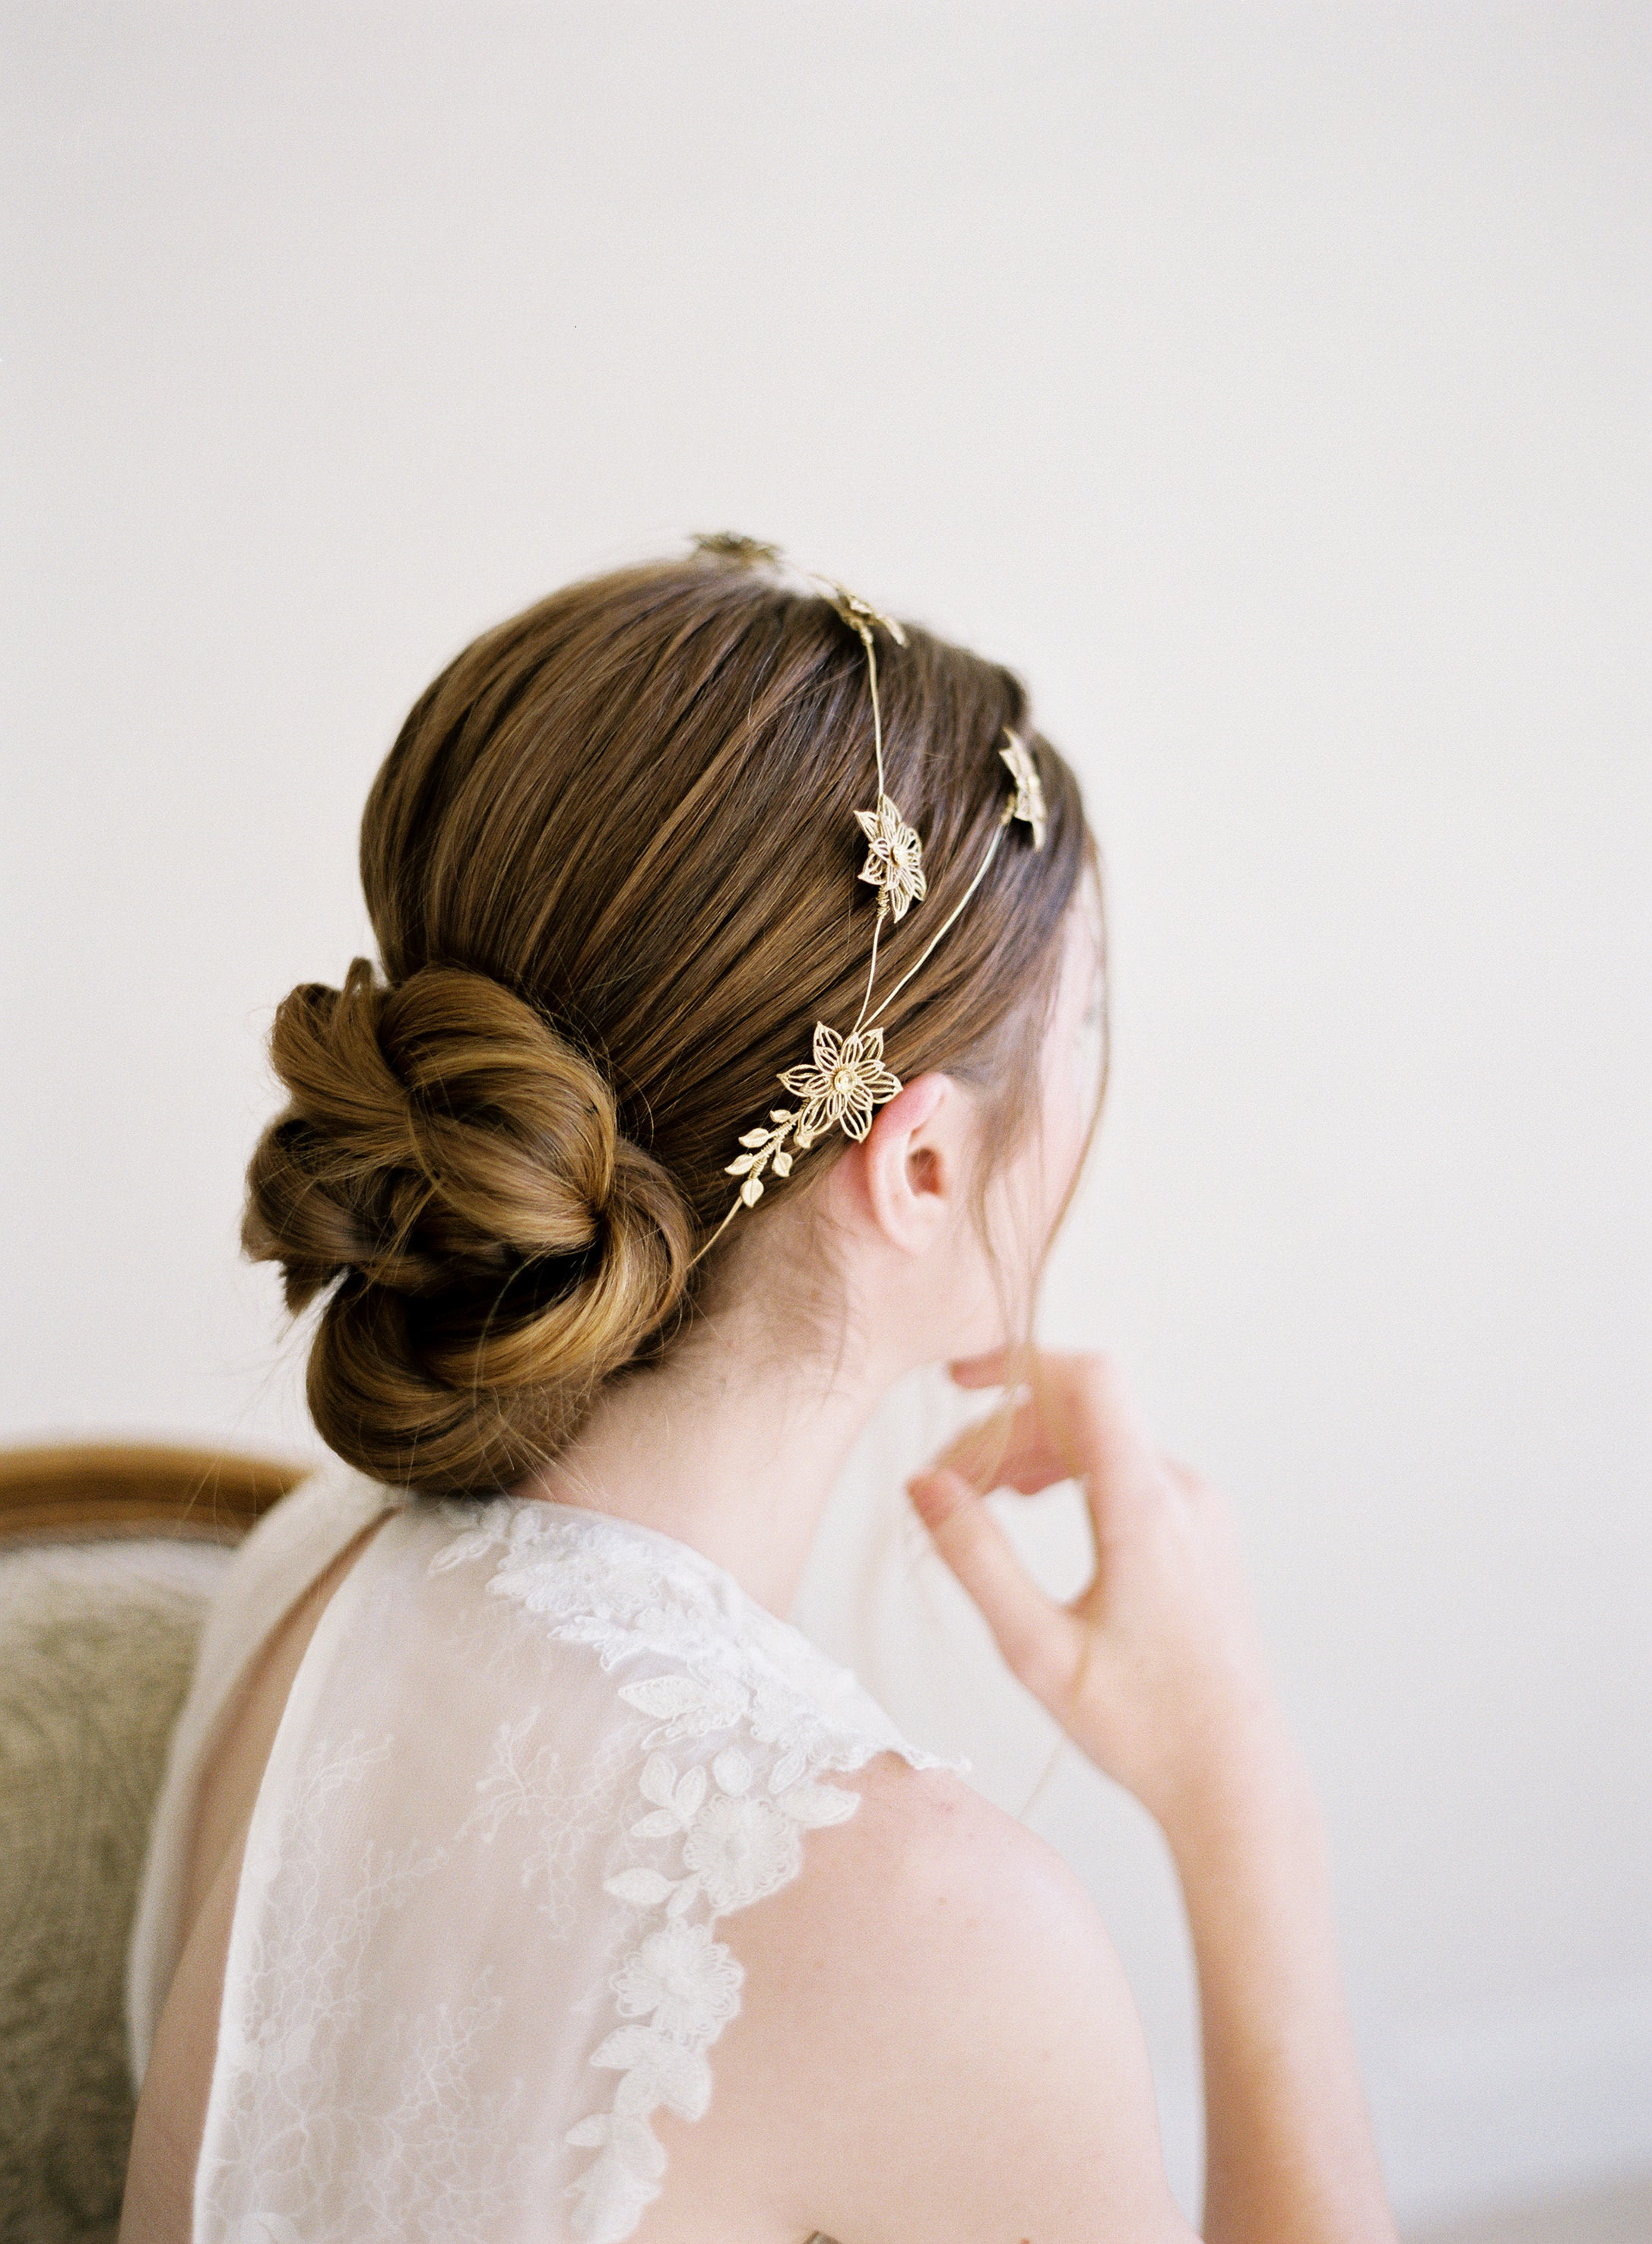 stargazer lily bridal crown